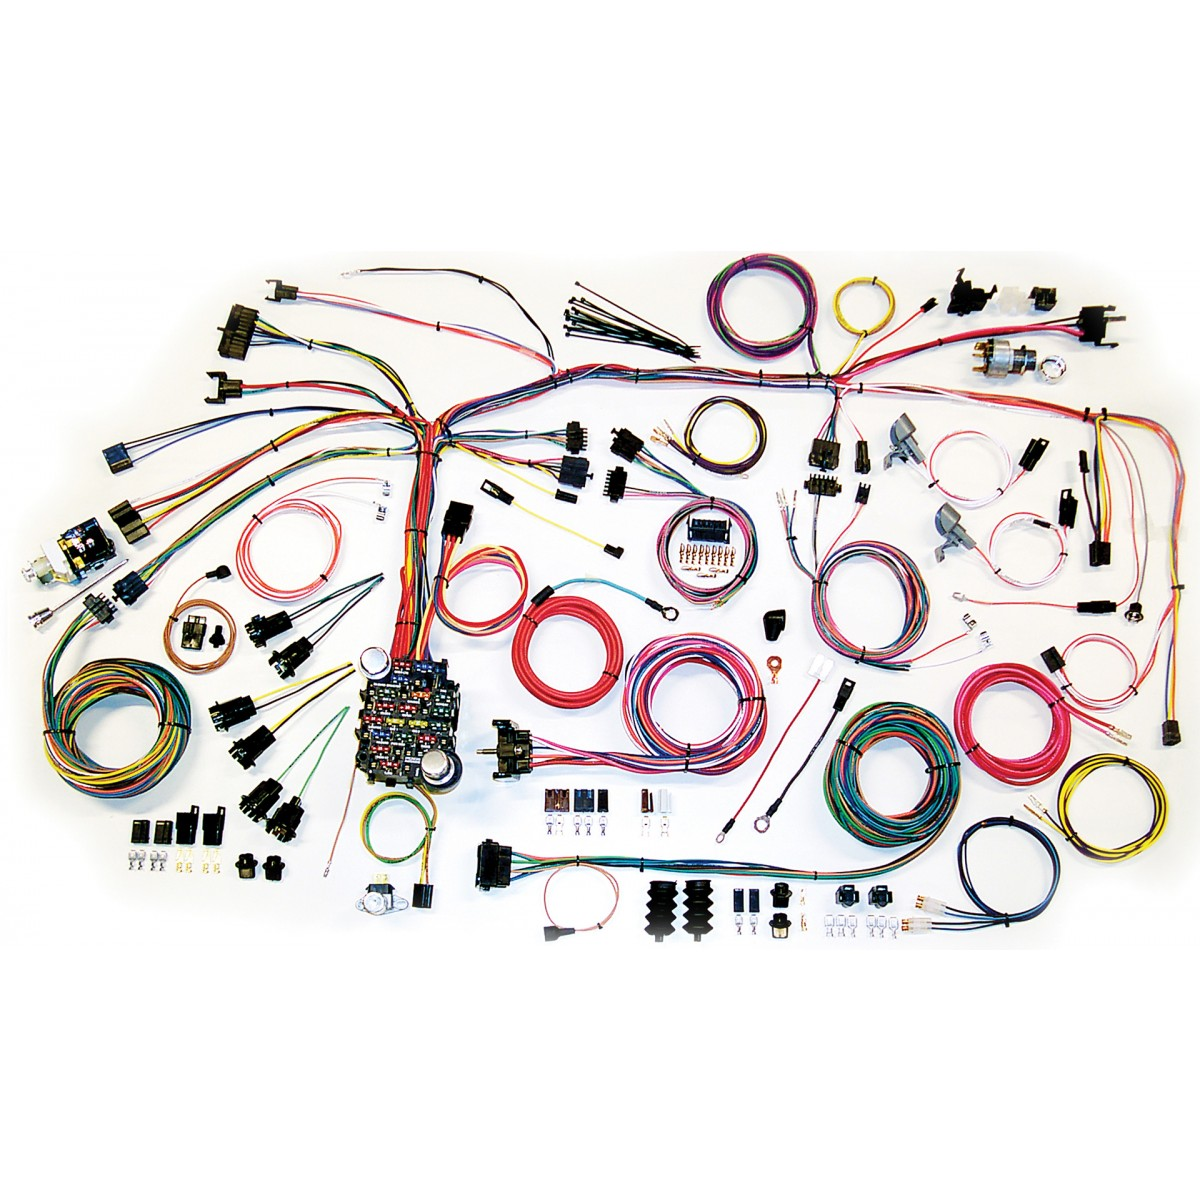 1968 Camaro Wiring Harness Kit Electrical Diagram House Mustang 1967 Complete Rh Code510 Com Seats